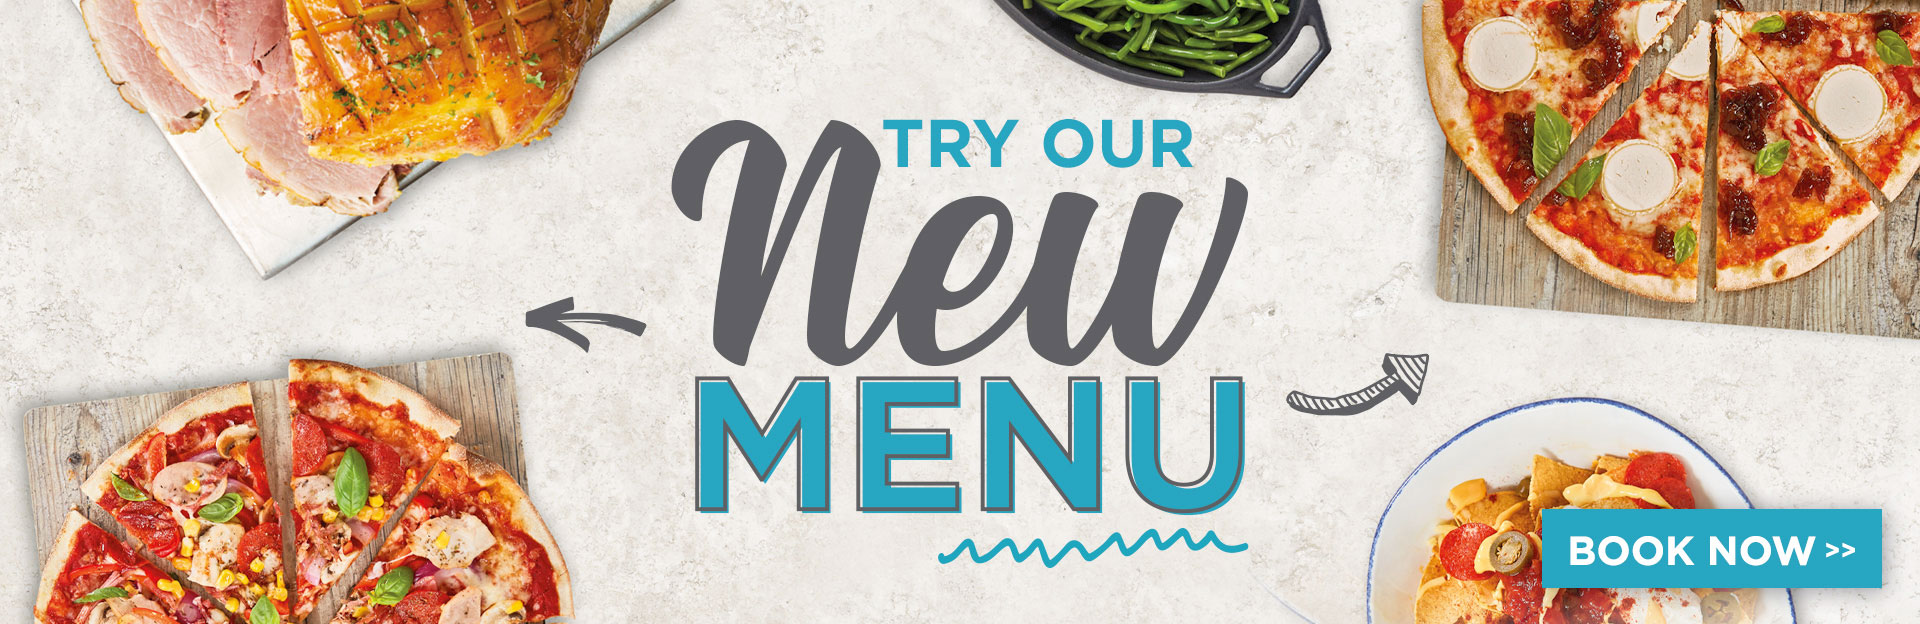 New menu at The Willow Tree